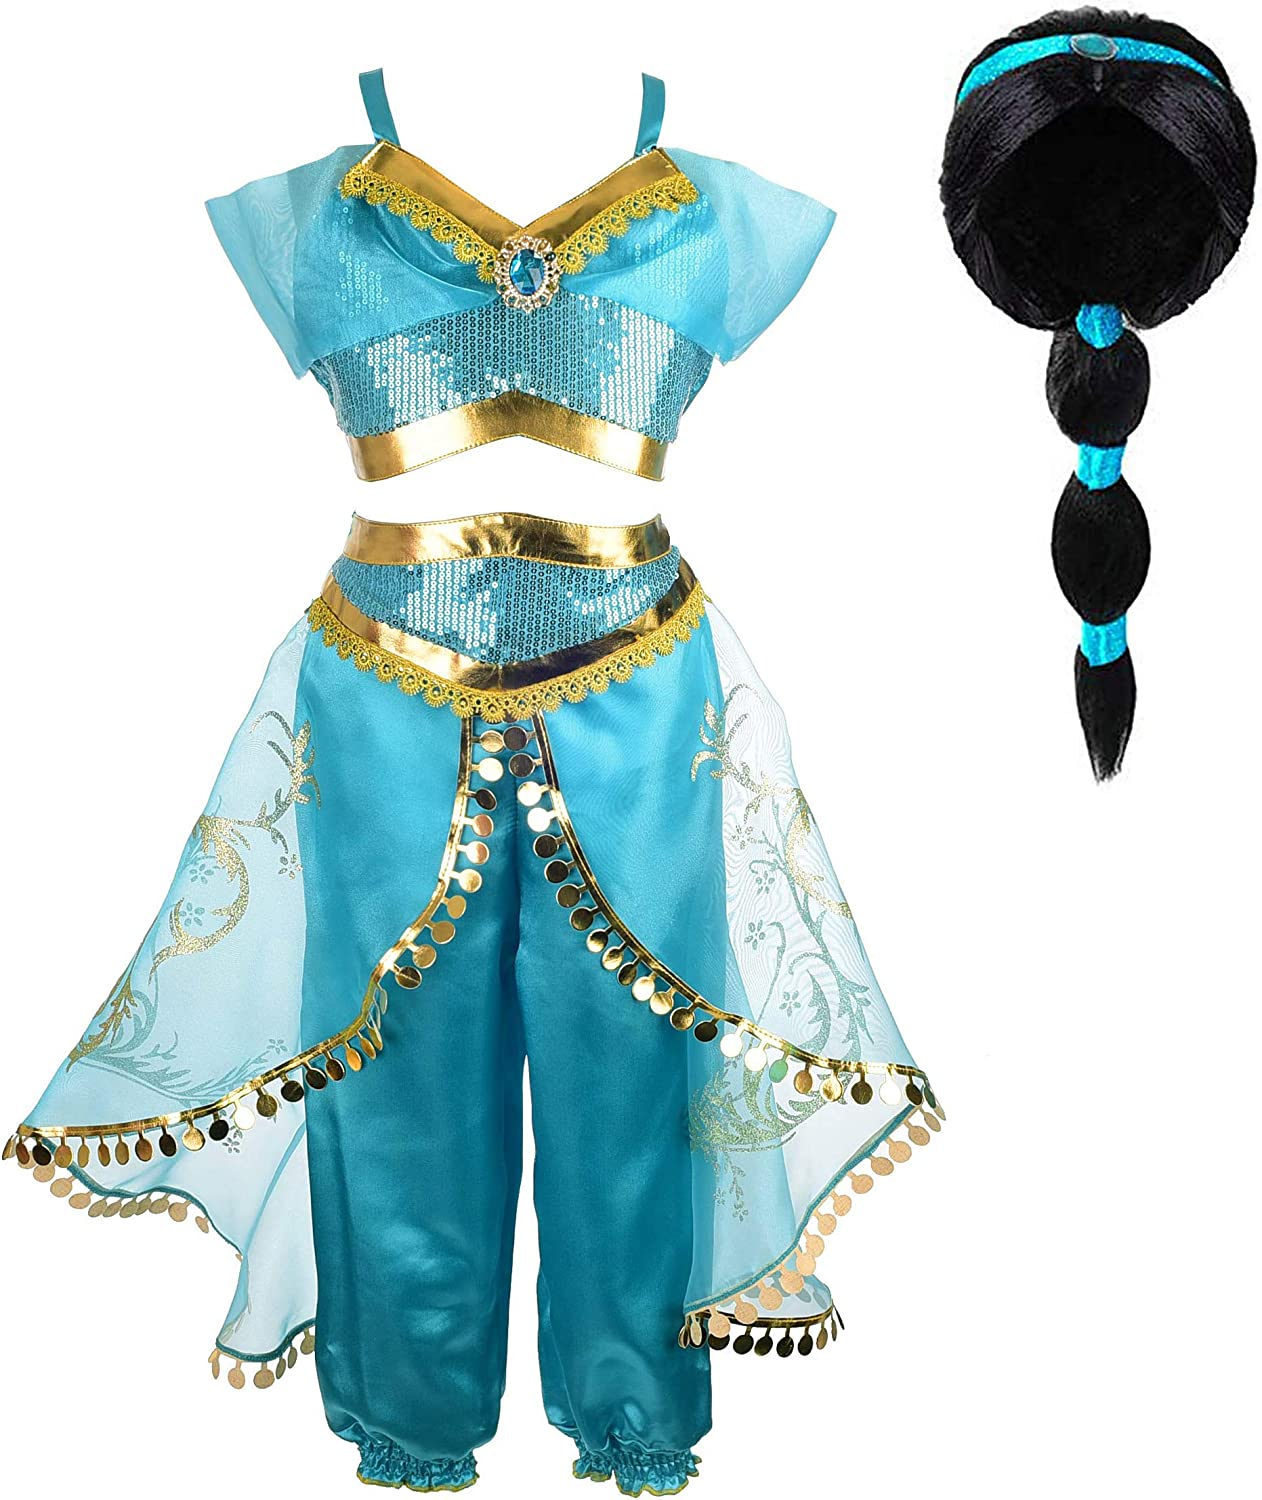 Tacobear Jasmine Costume For Girls Arabian Sequined Princess Dress Up Princess Cosplay Costumes For Kids Clothing